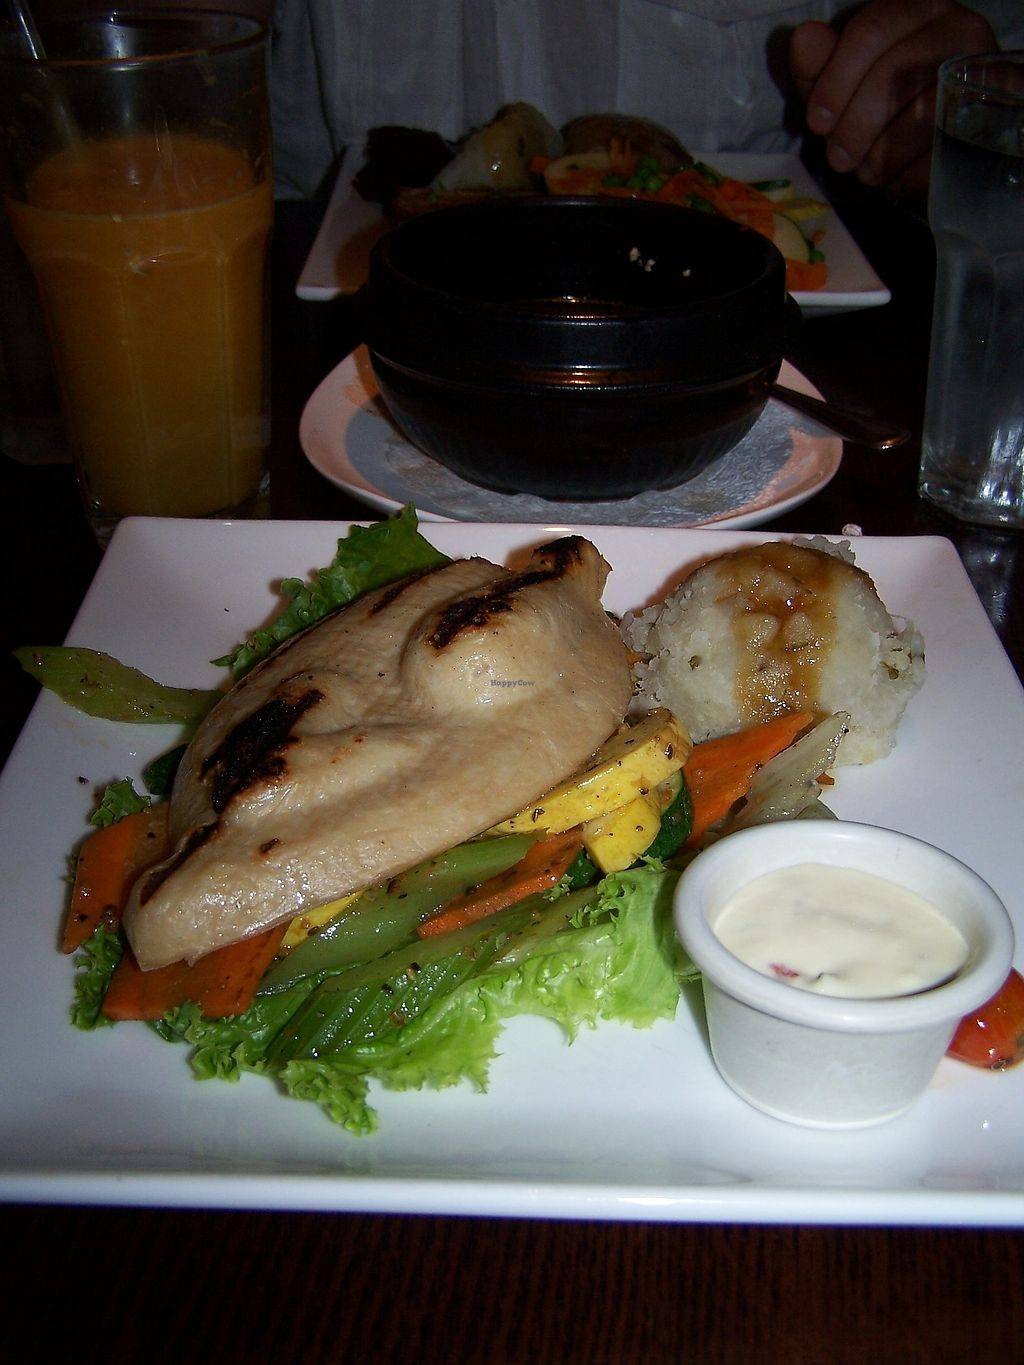 """Photo of CLOSED: Vegetarian's Paradise 2  by <a href=""""/members/profile/TrudiBruges"""">TrudiBruges</a> <br/>mock chicken. Ugh. (2010) <br/> November 28, 2017  - <a href='/contact/abuse/image/5638/330153'>Report</a>"""